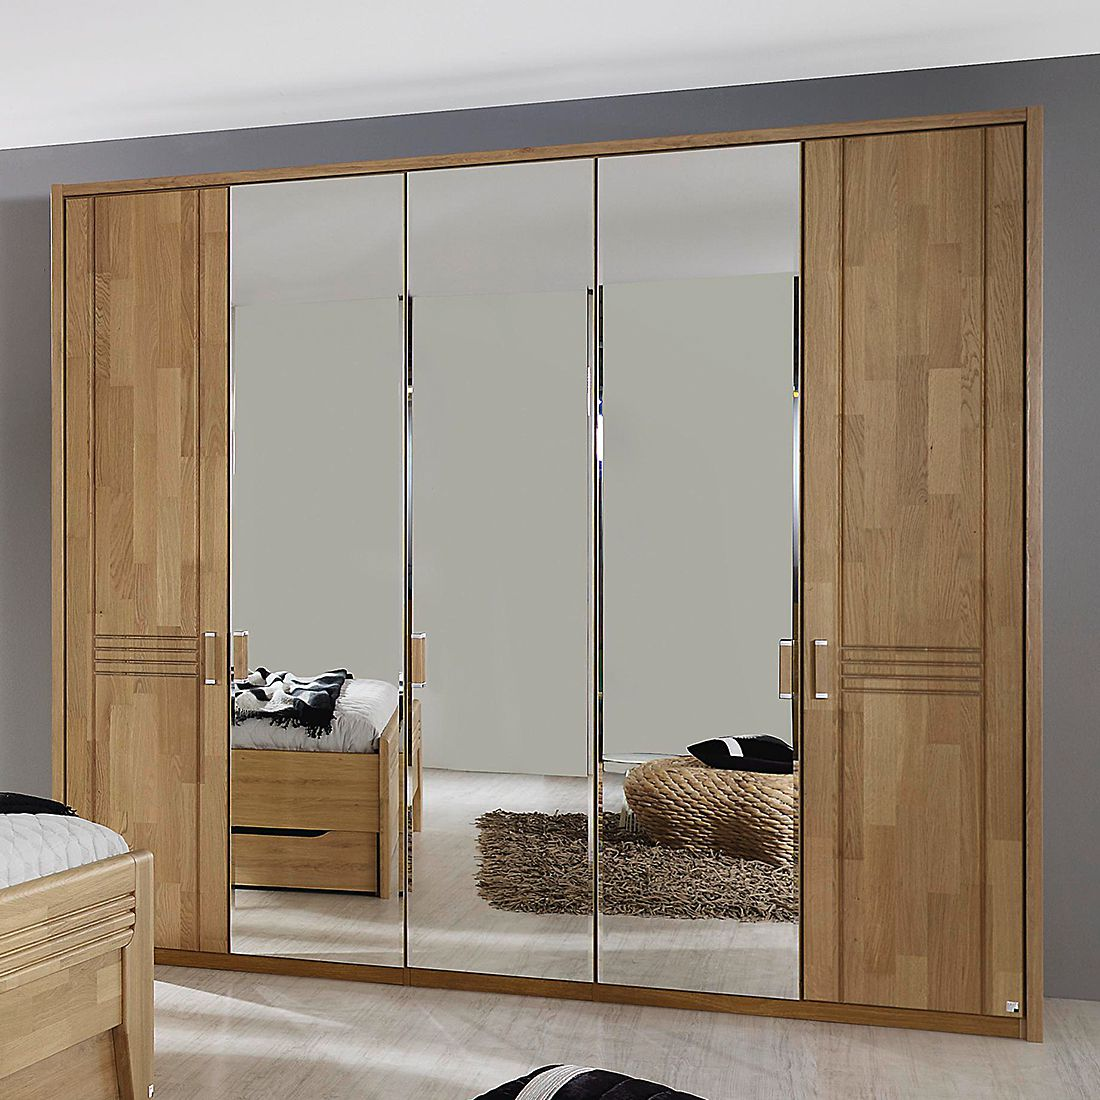 paneel rauch steffen ma e breite 58 cm h he 42 cm tiefe 38 pictures to pin on pinterest. Black Bedroom Furniture Sets. Home Design Ideas